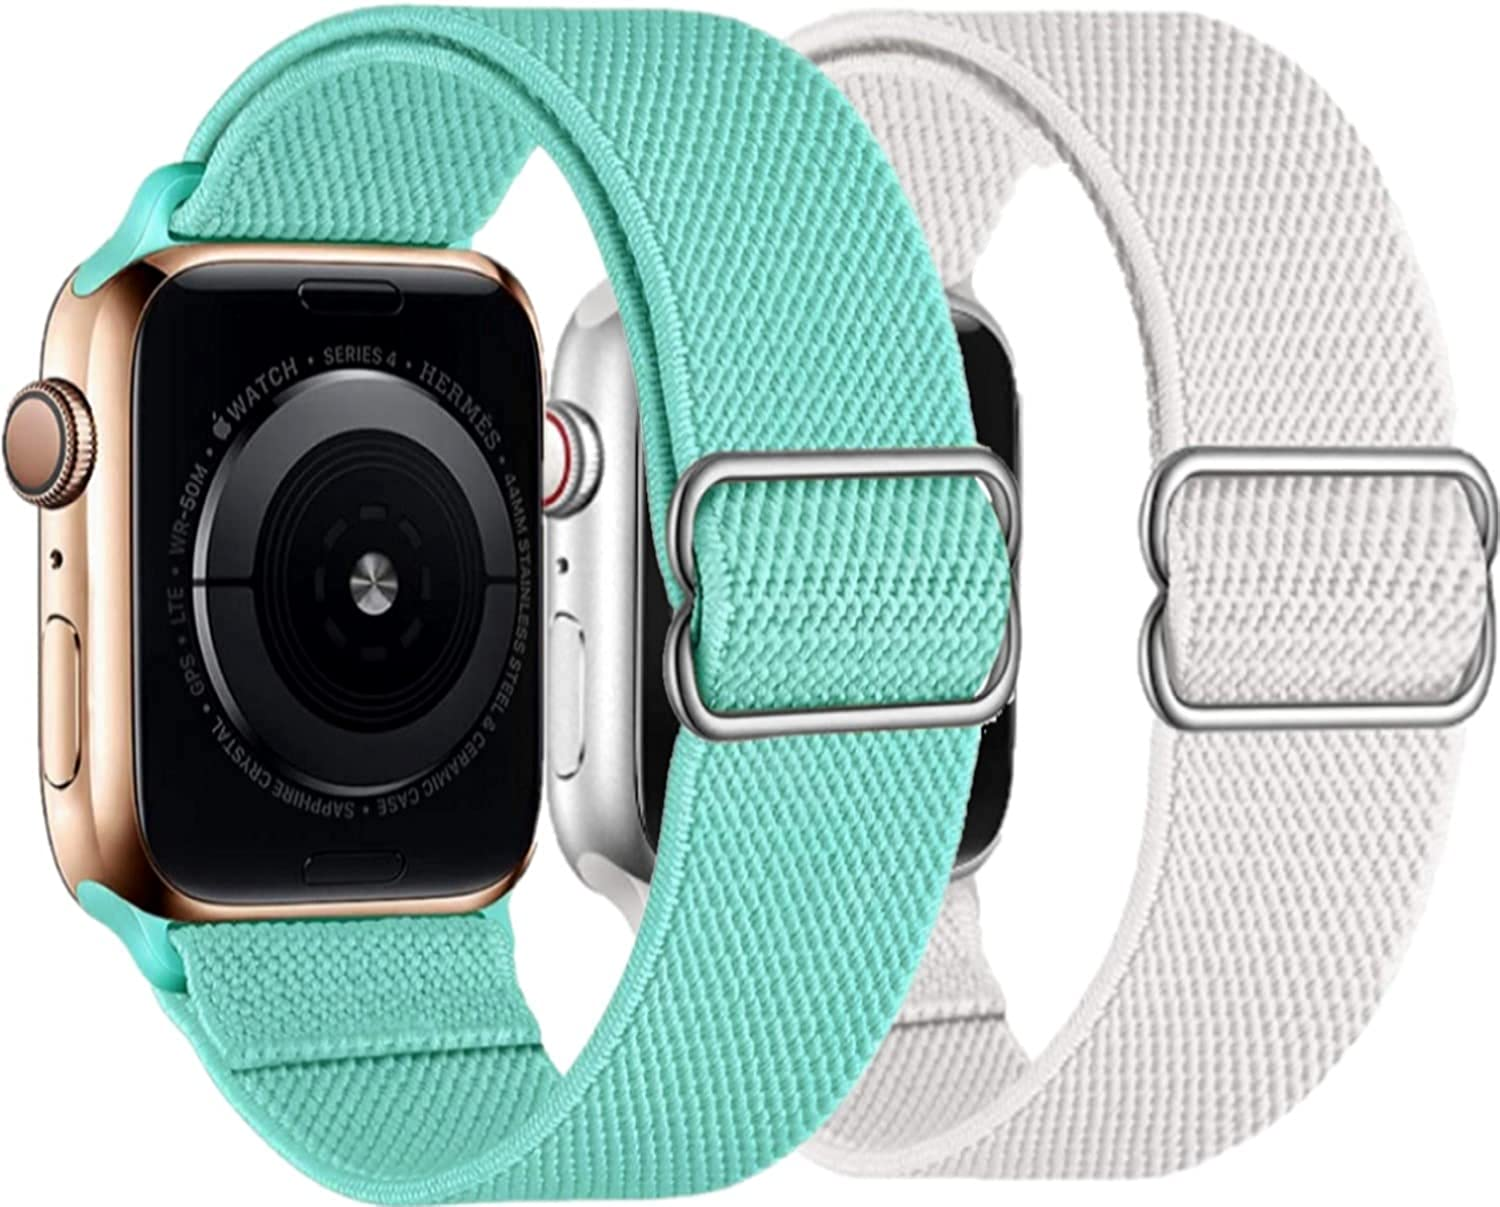 Pack of 2 Stretchy Compatible with Apple Watch Bands 38mm 40mm and 42mm 44mm for Women Men, Nylon Solo Loop Replacement for iwatch Straps, Adjustable Braided Bracelets SE Series 6,5,4,3,2,1